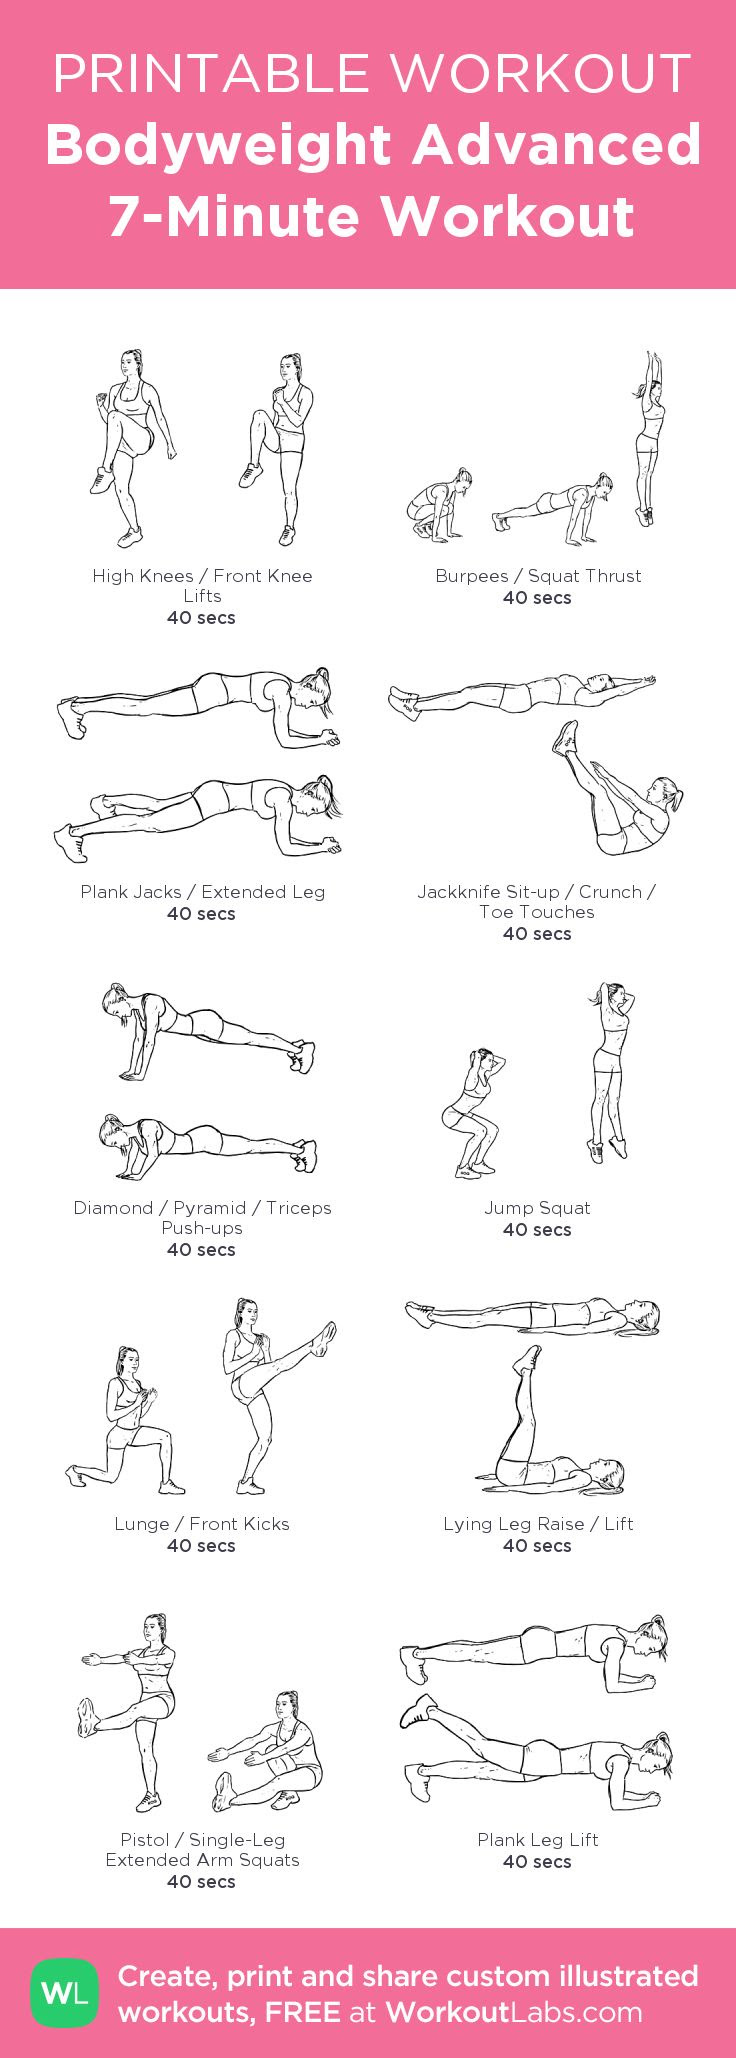 1000+ ideas about 7 Minute Workout on Pinterest | Exercise, 7 ...